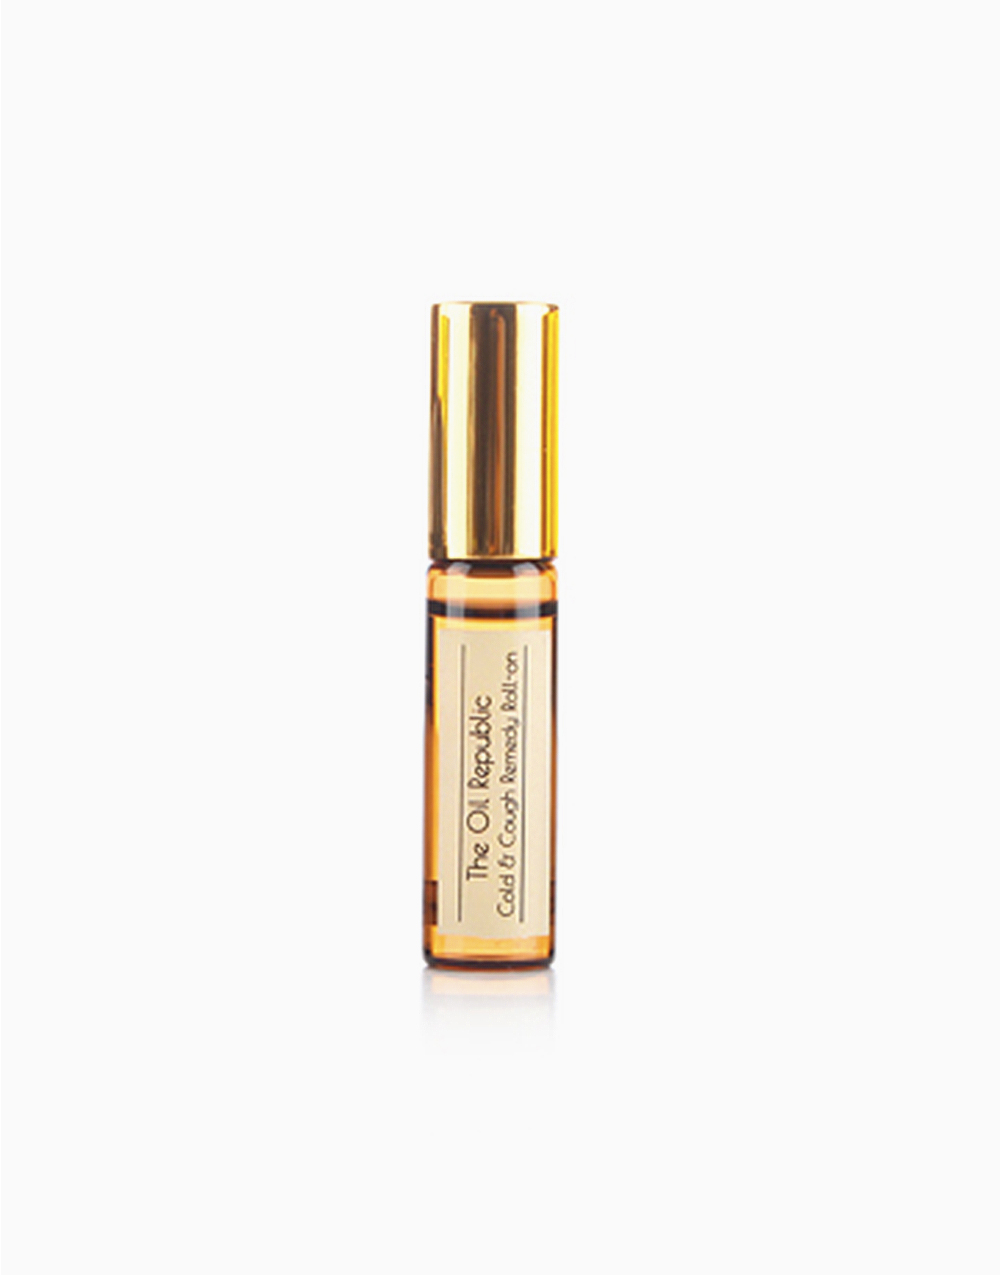 Cold and Cough Remedy Roll-On by Oil Republic